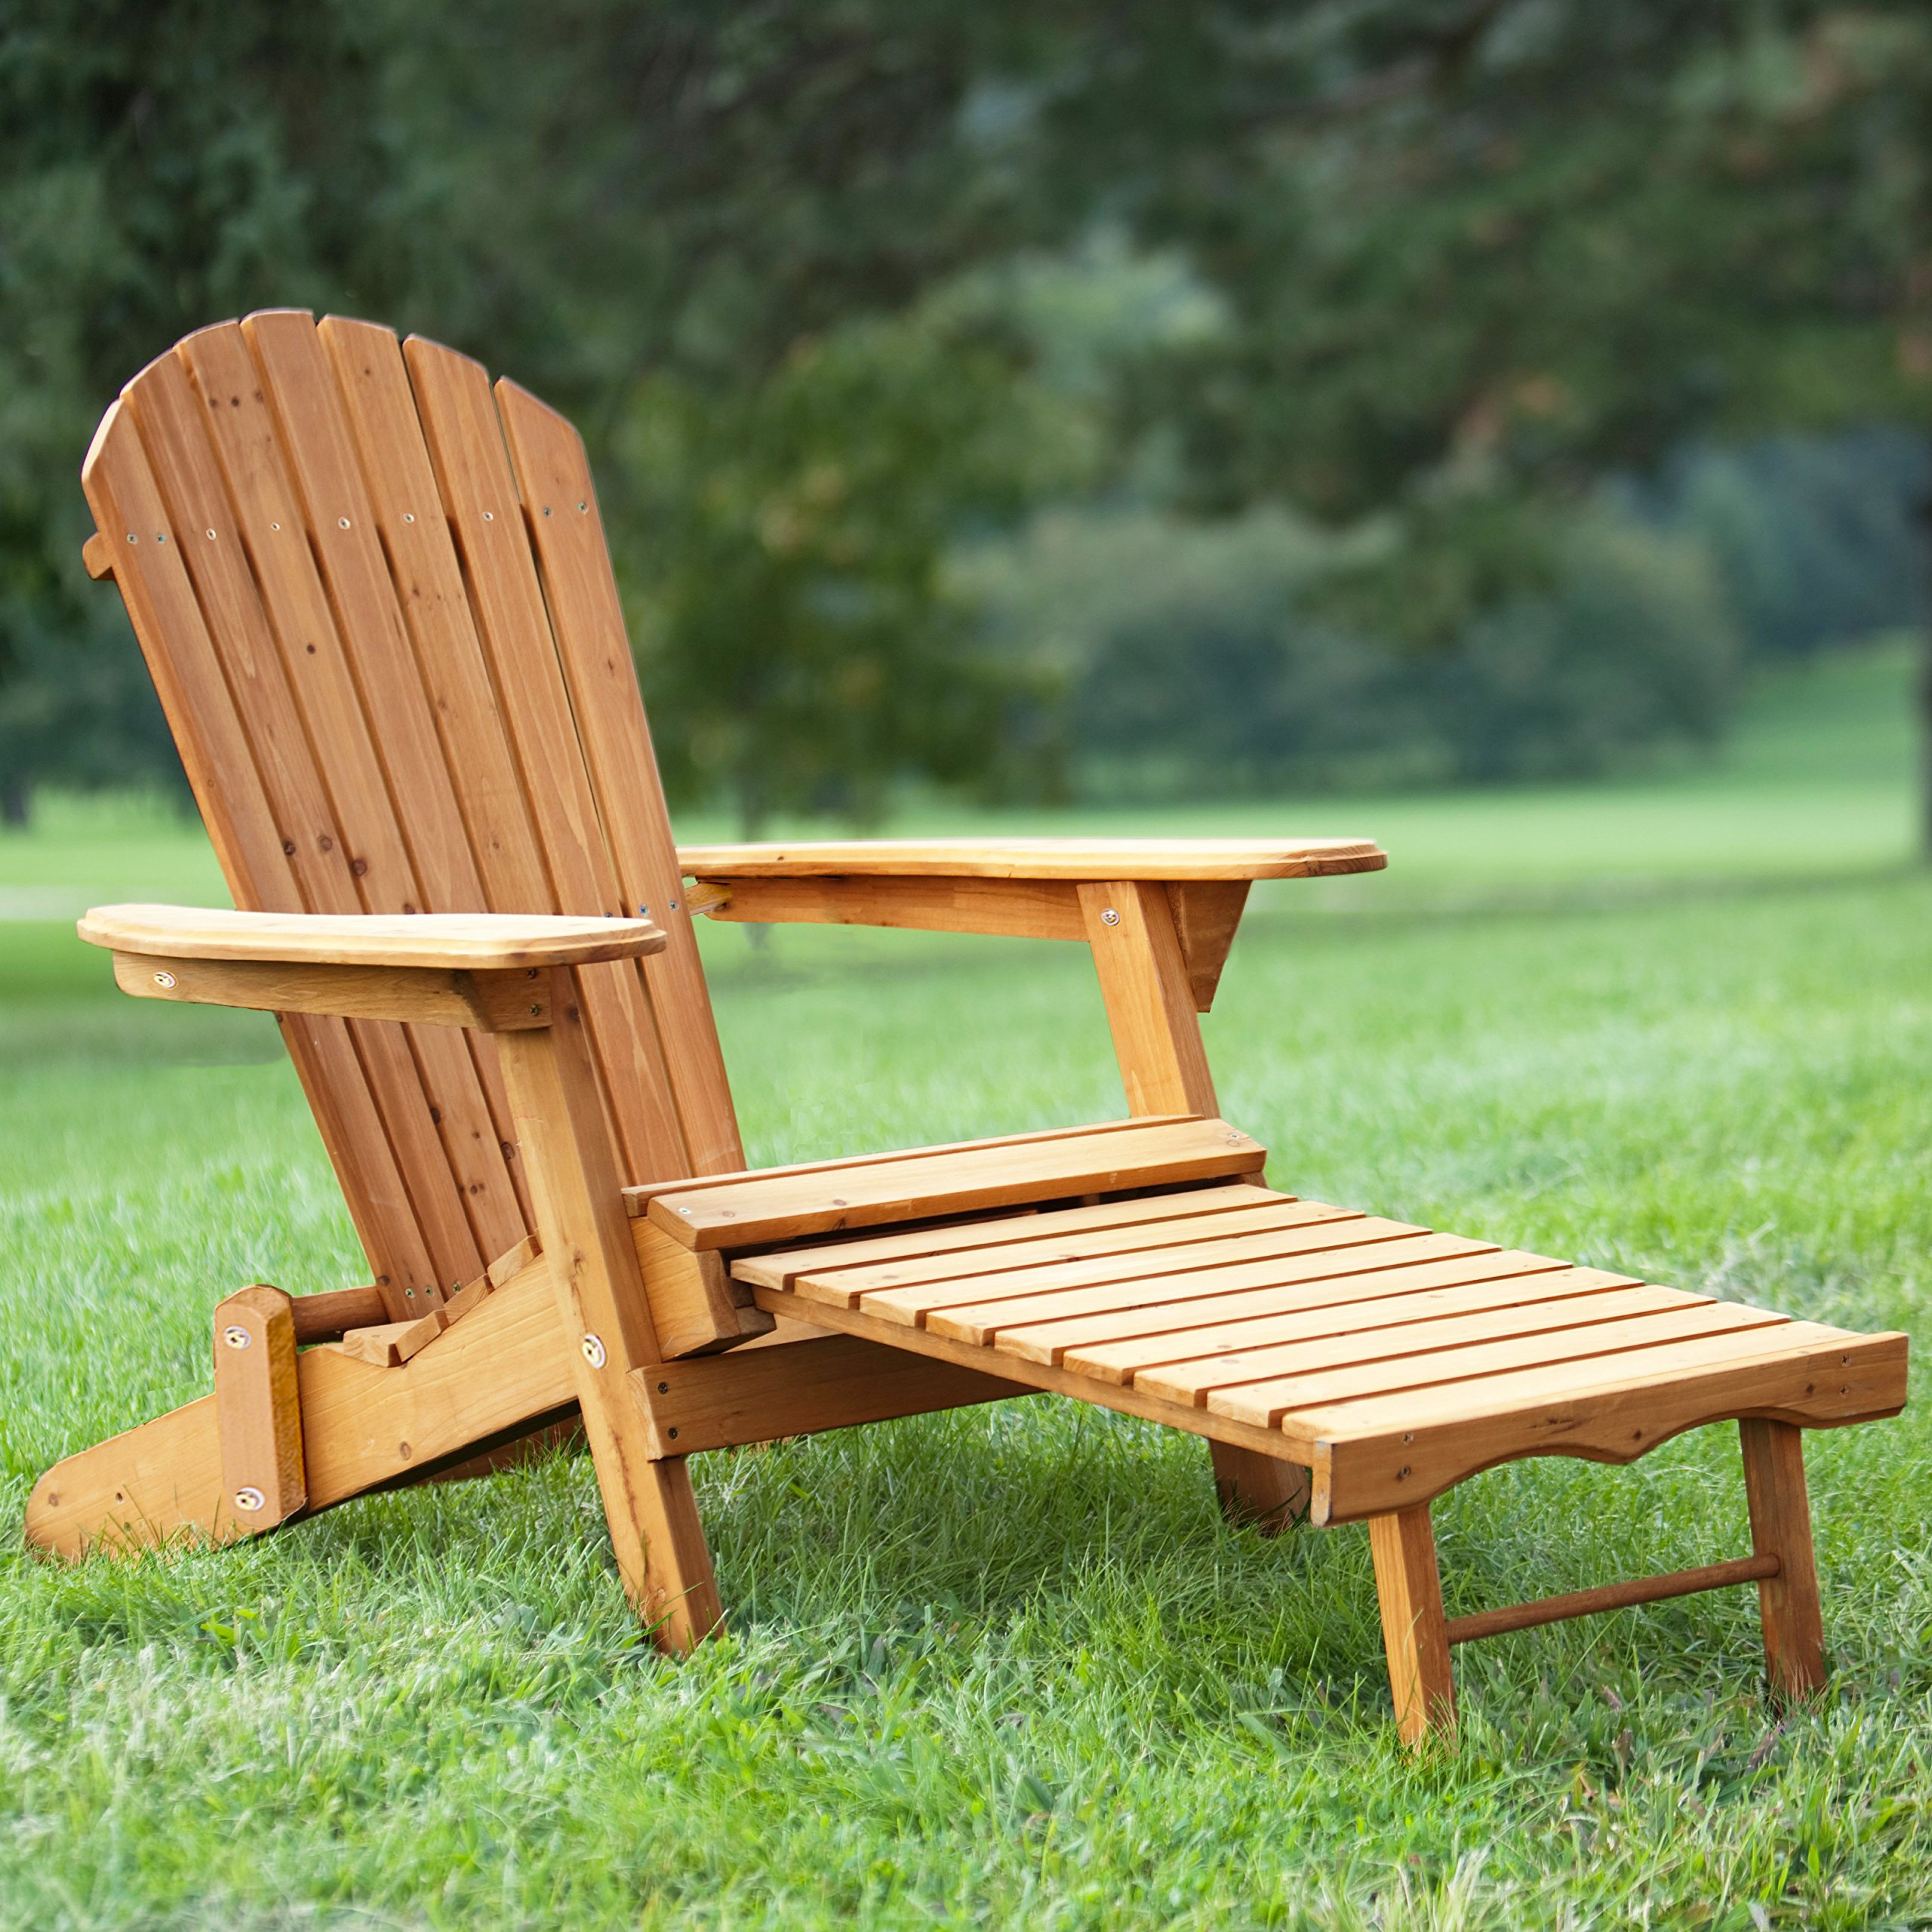 FDW Outdoor Wood Adirondack Chair Foldable w/Pull Out Ottoman Patio Furniture by FDW (Image #2)